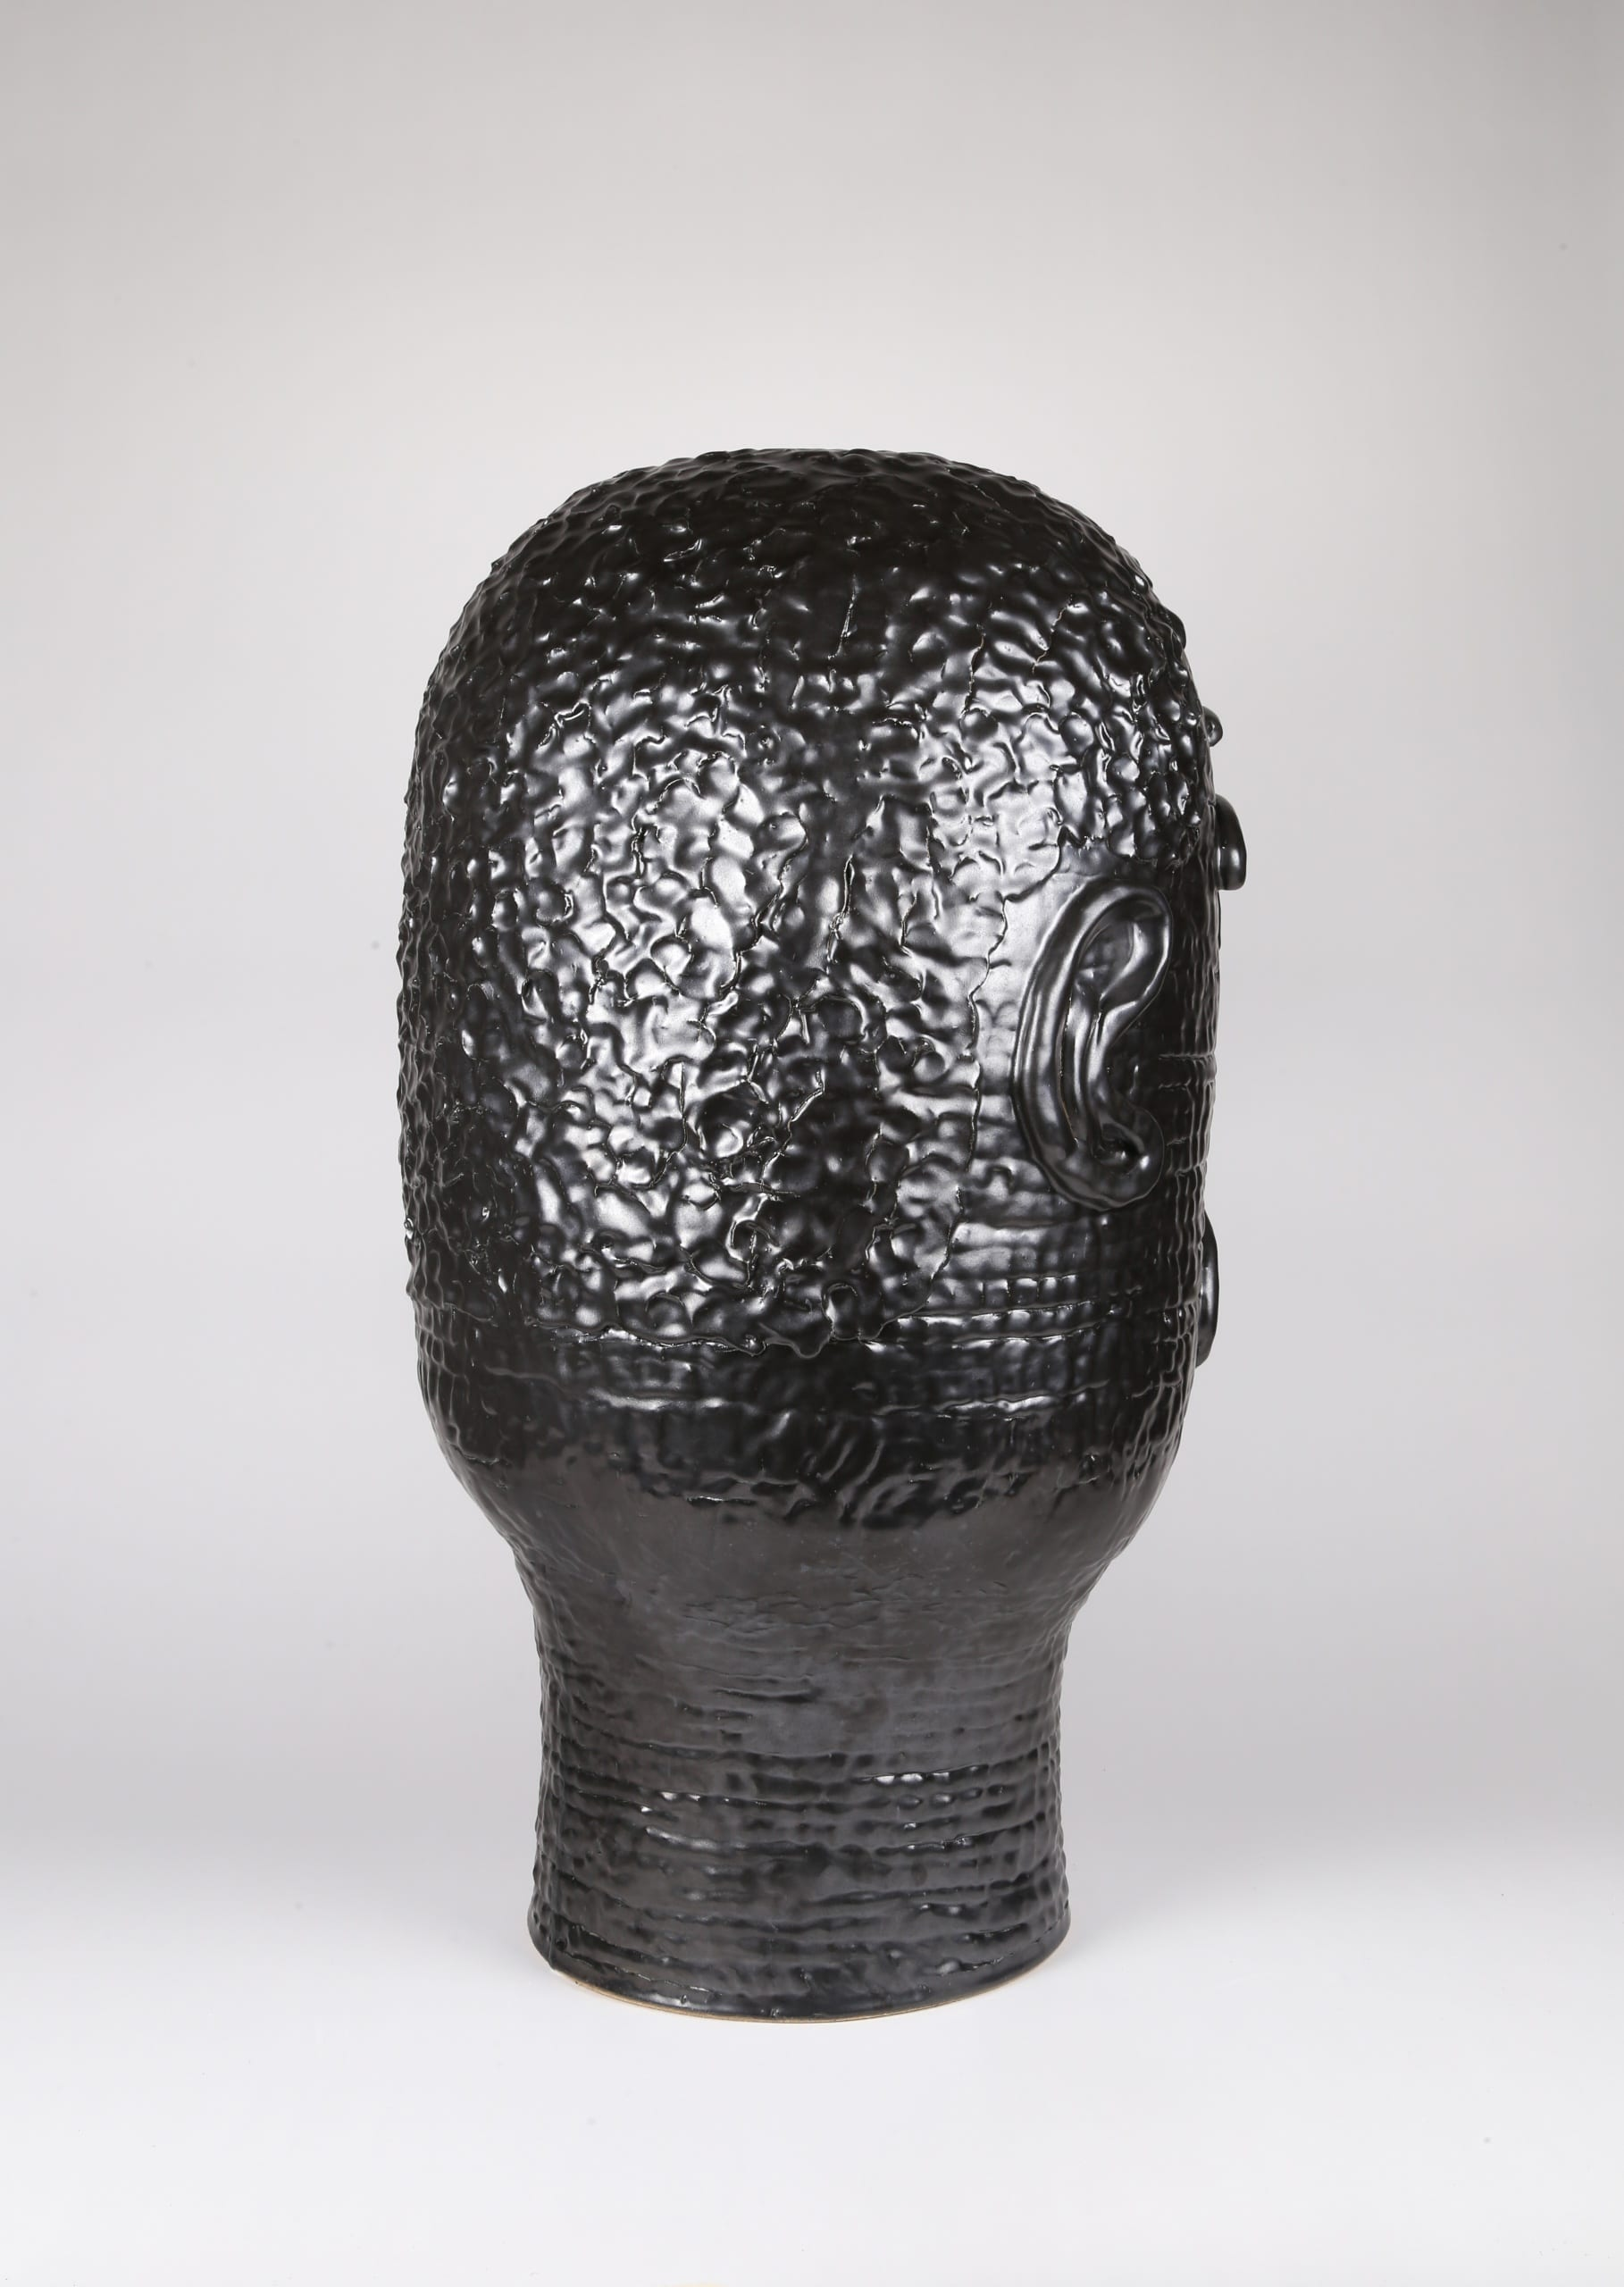 Color photograph with a back view of an abstract ceramic portrait head that appears to be made from a long coil of clay. The rear of the portrait details the texture of the figure's short cropped hair. The object is monochromatic (black), with a slight sheen to the glaze.